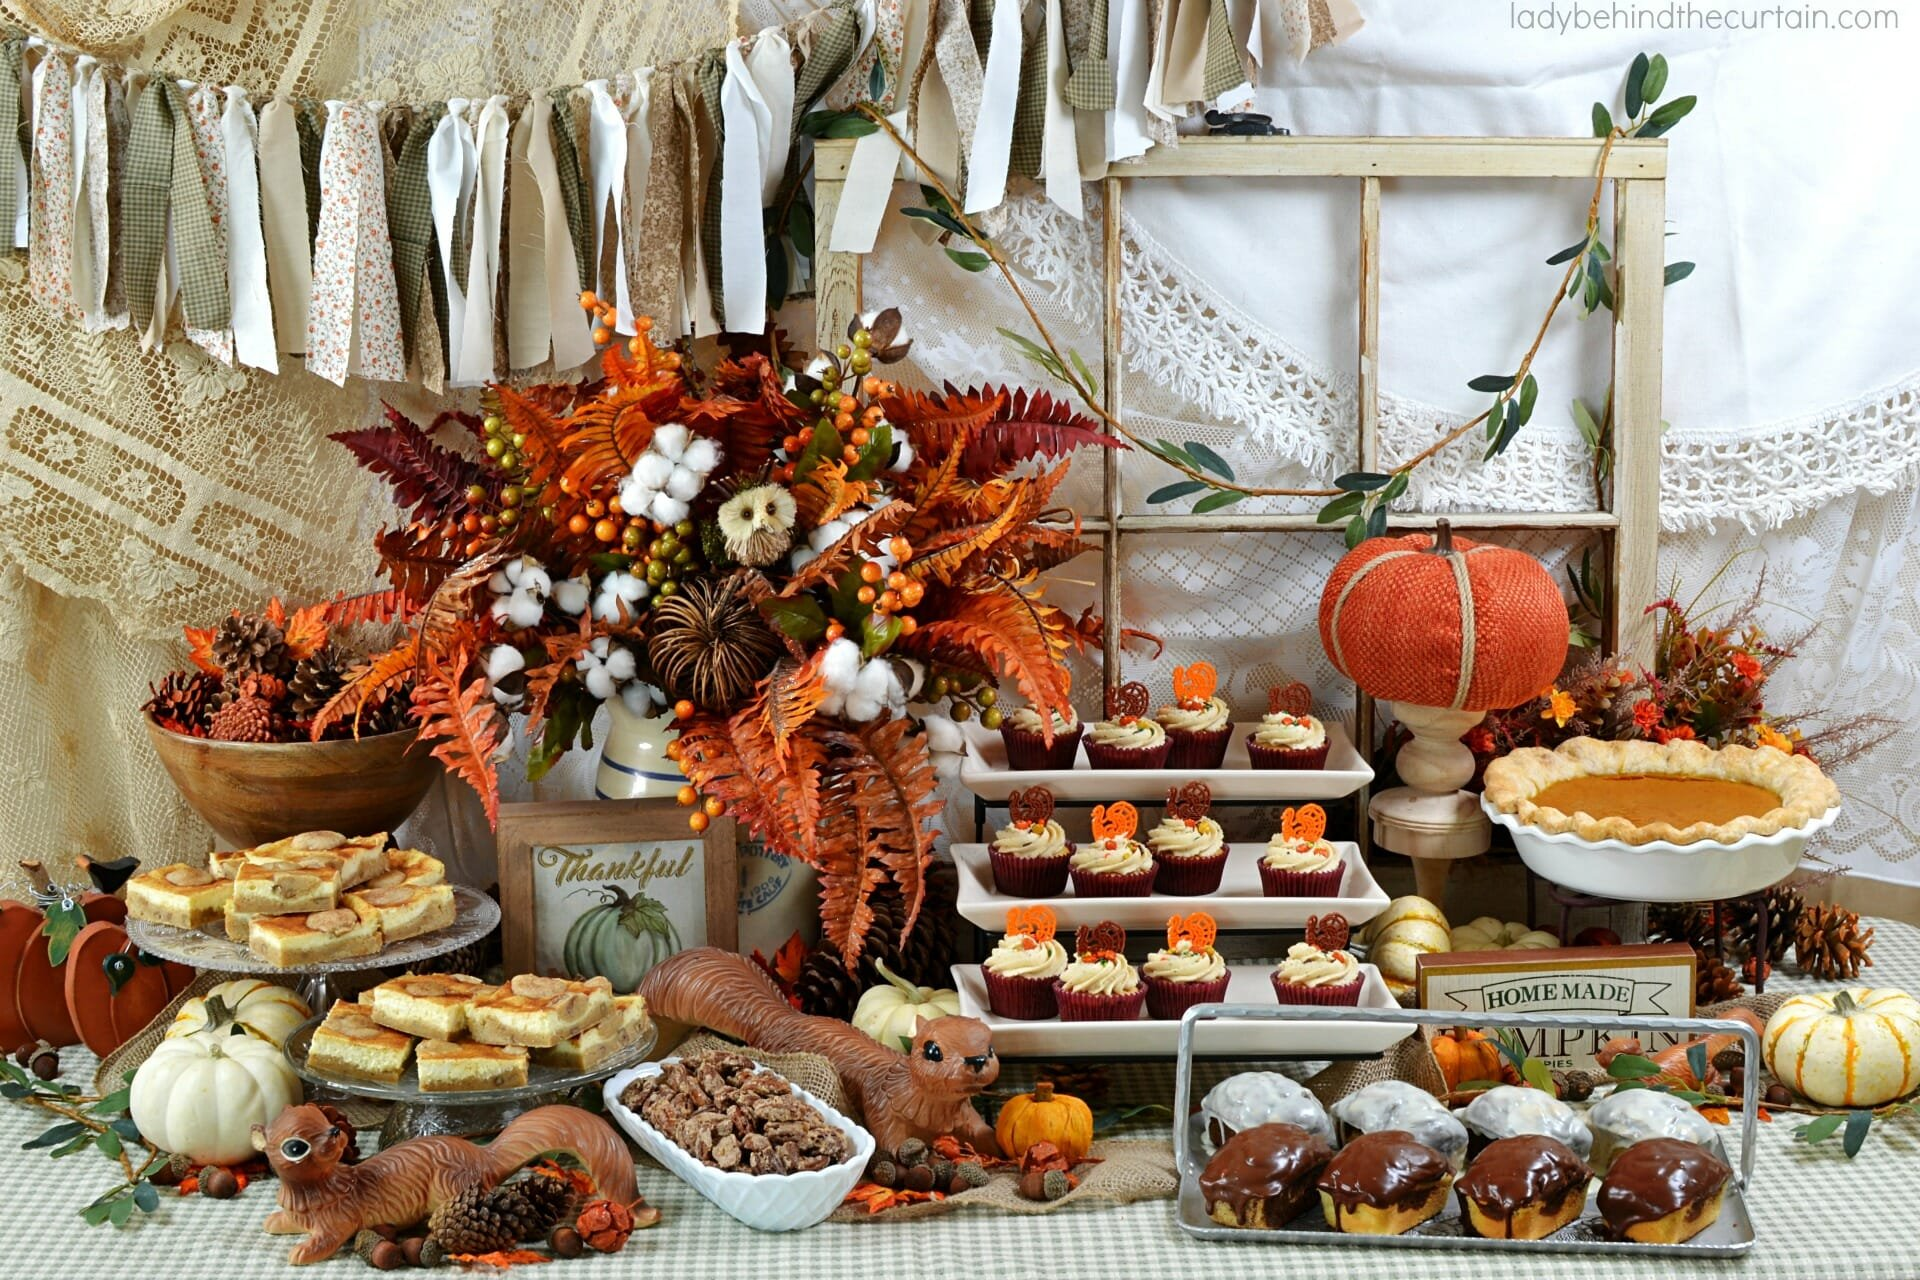 Thanksgiving Decorations 2019 10 Chic And Easy Thanksgiving